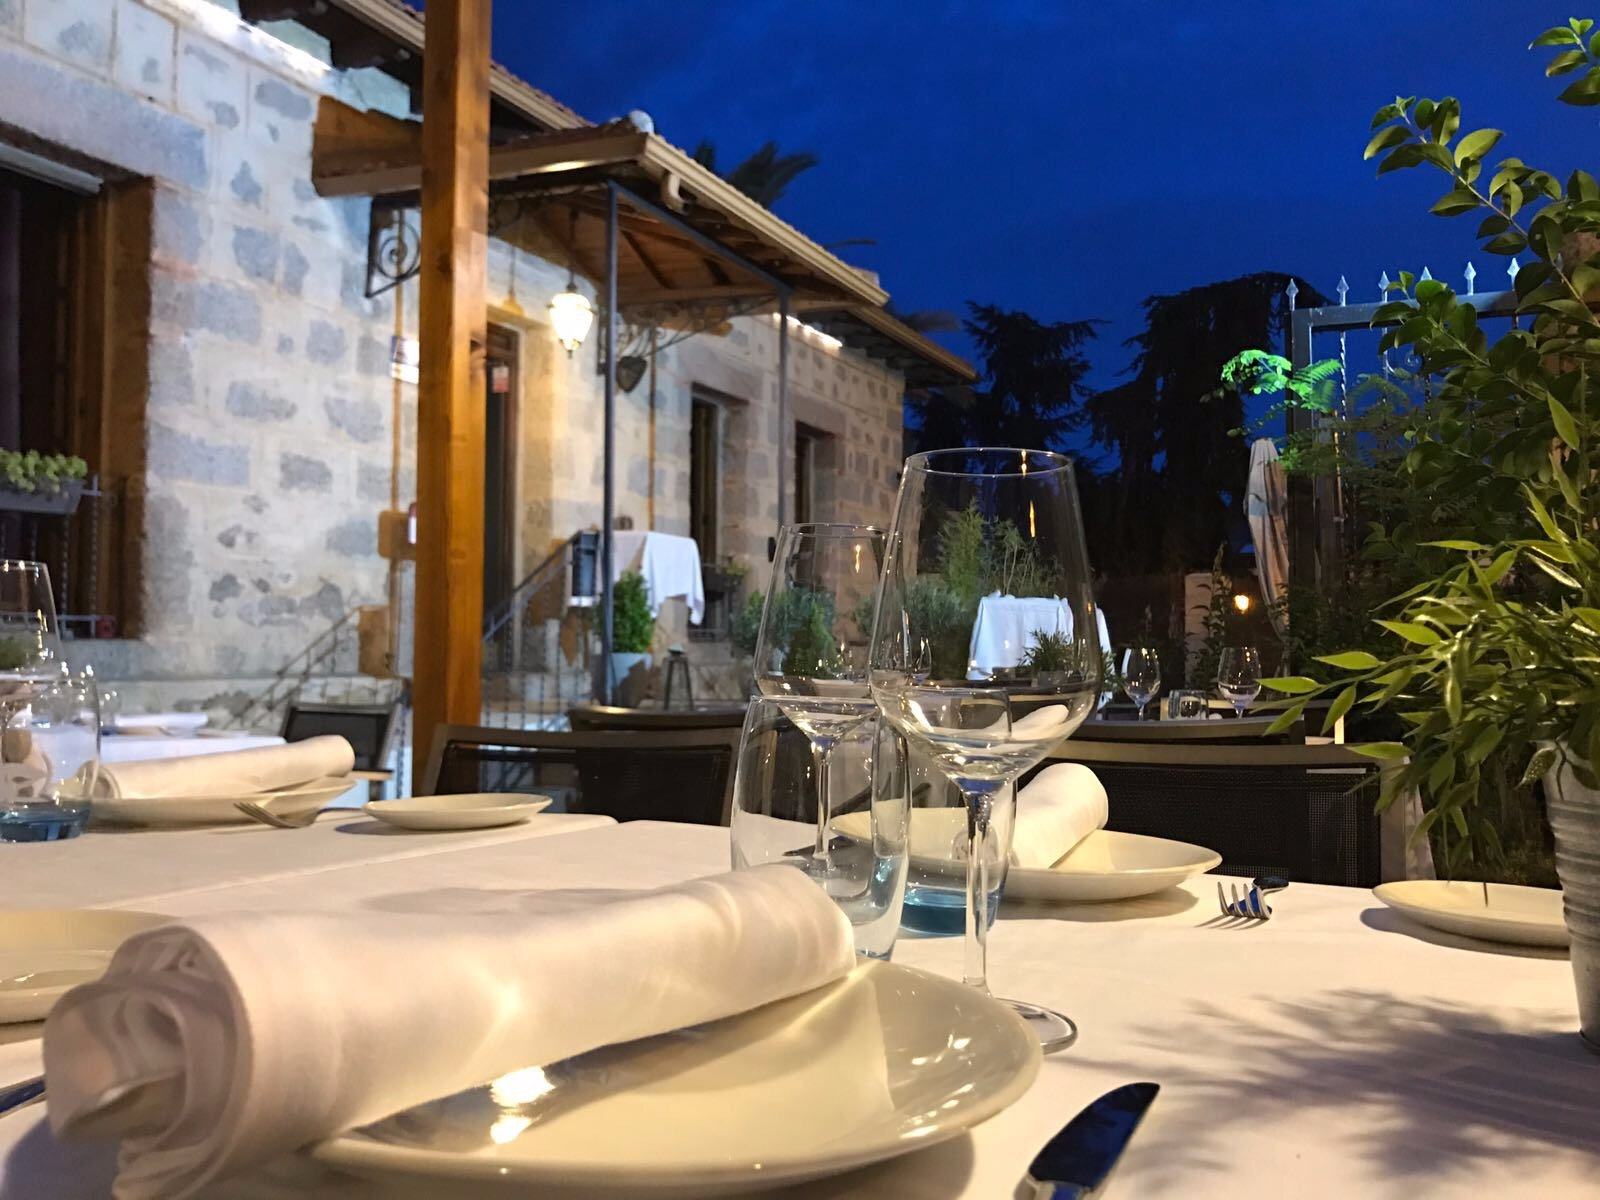 Things To Do in Campania, Restaurants in Campania